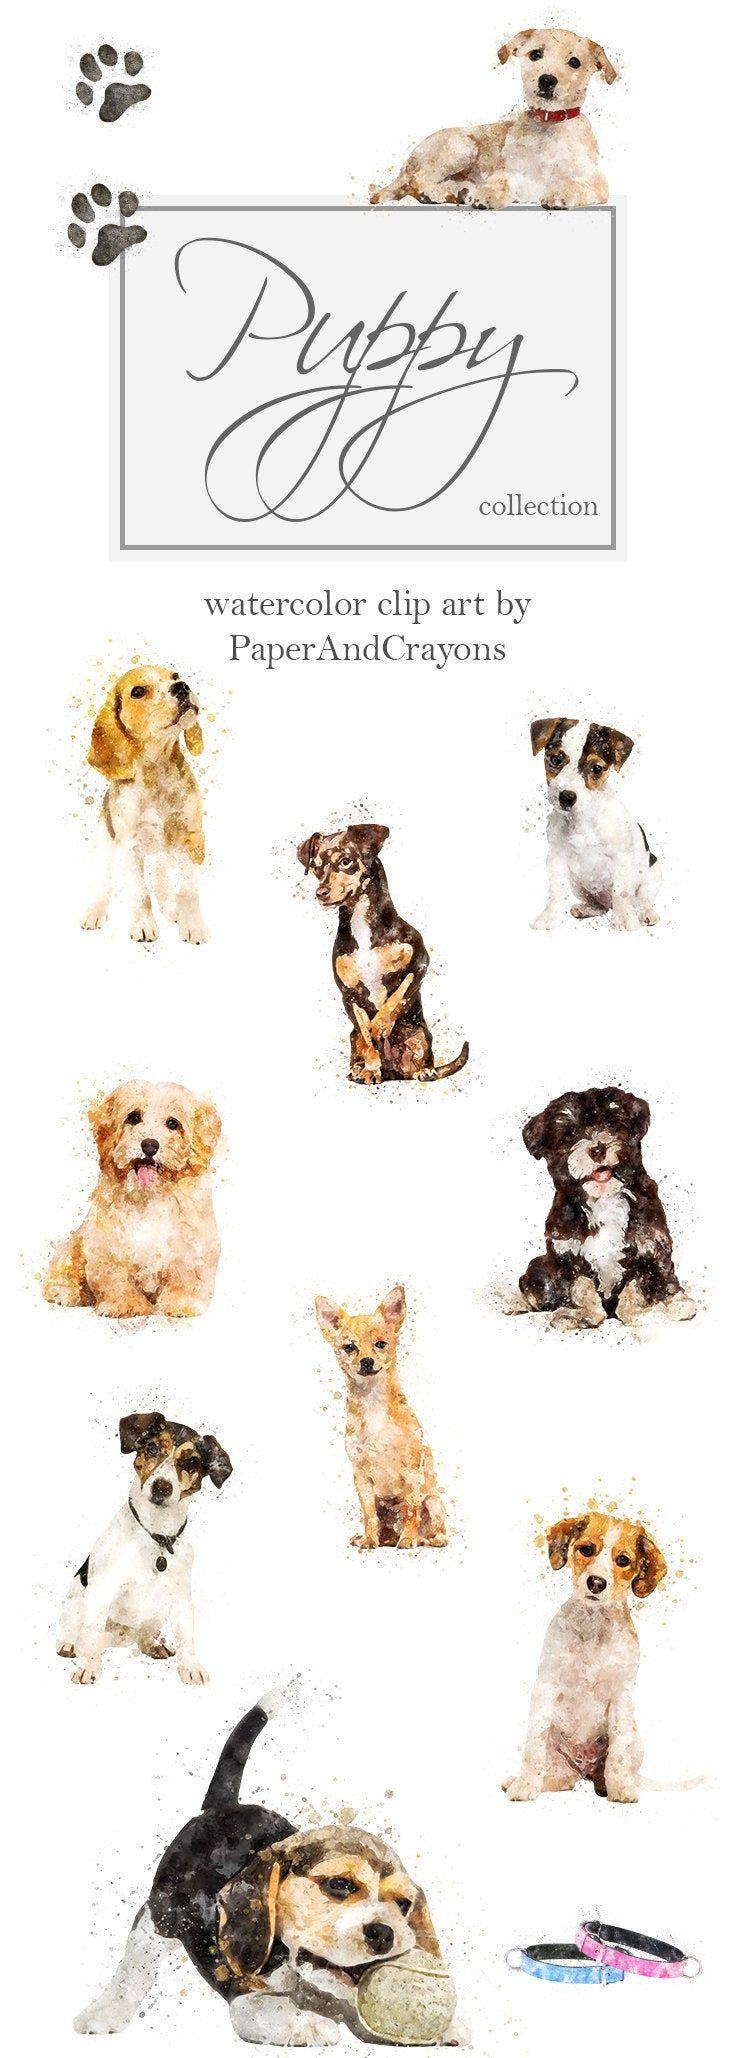 Watercolor Puppies, Dog Clipart, Puppy Clip Art, Animal Graphics, Terrier, Havanese, Chihuahua, Beagle, PaperAndCrayons, Digital Download